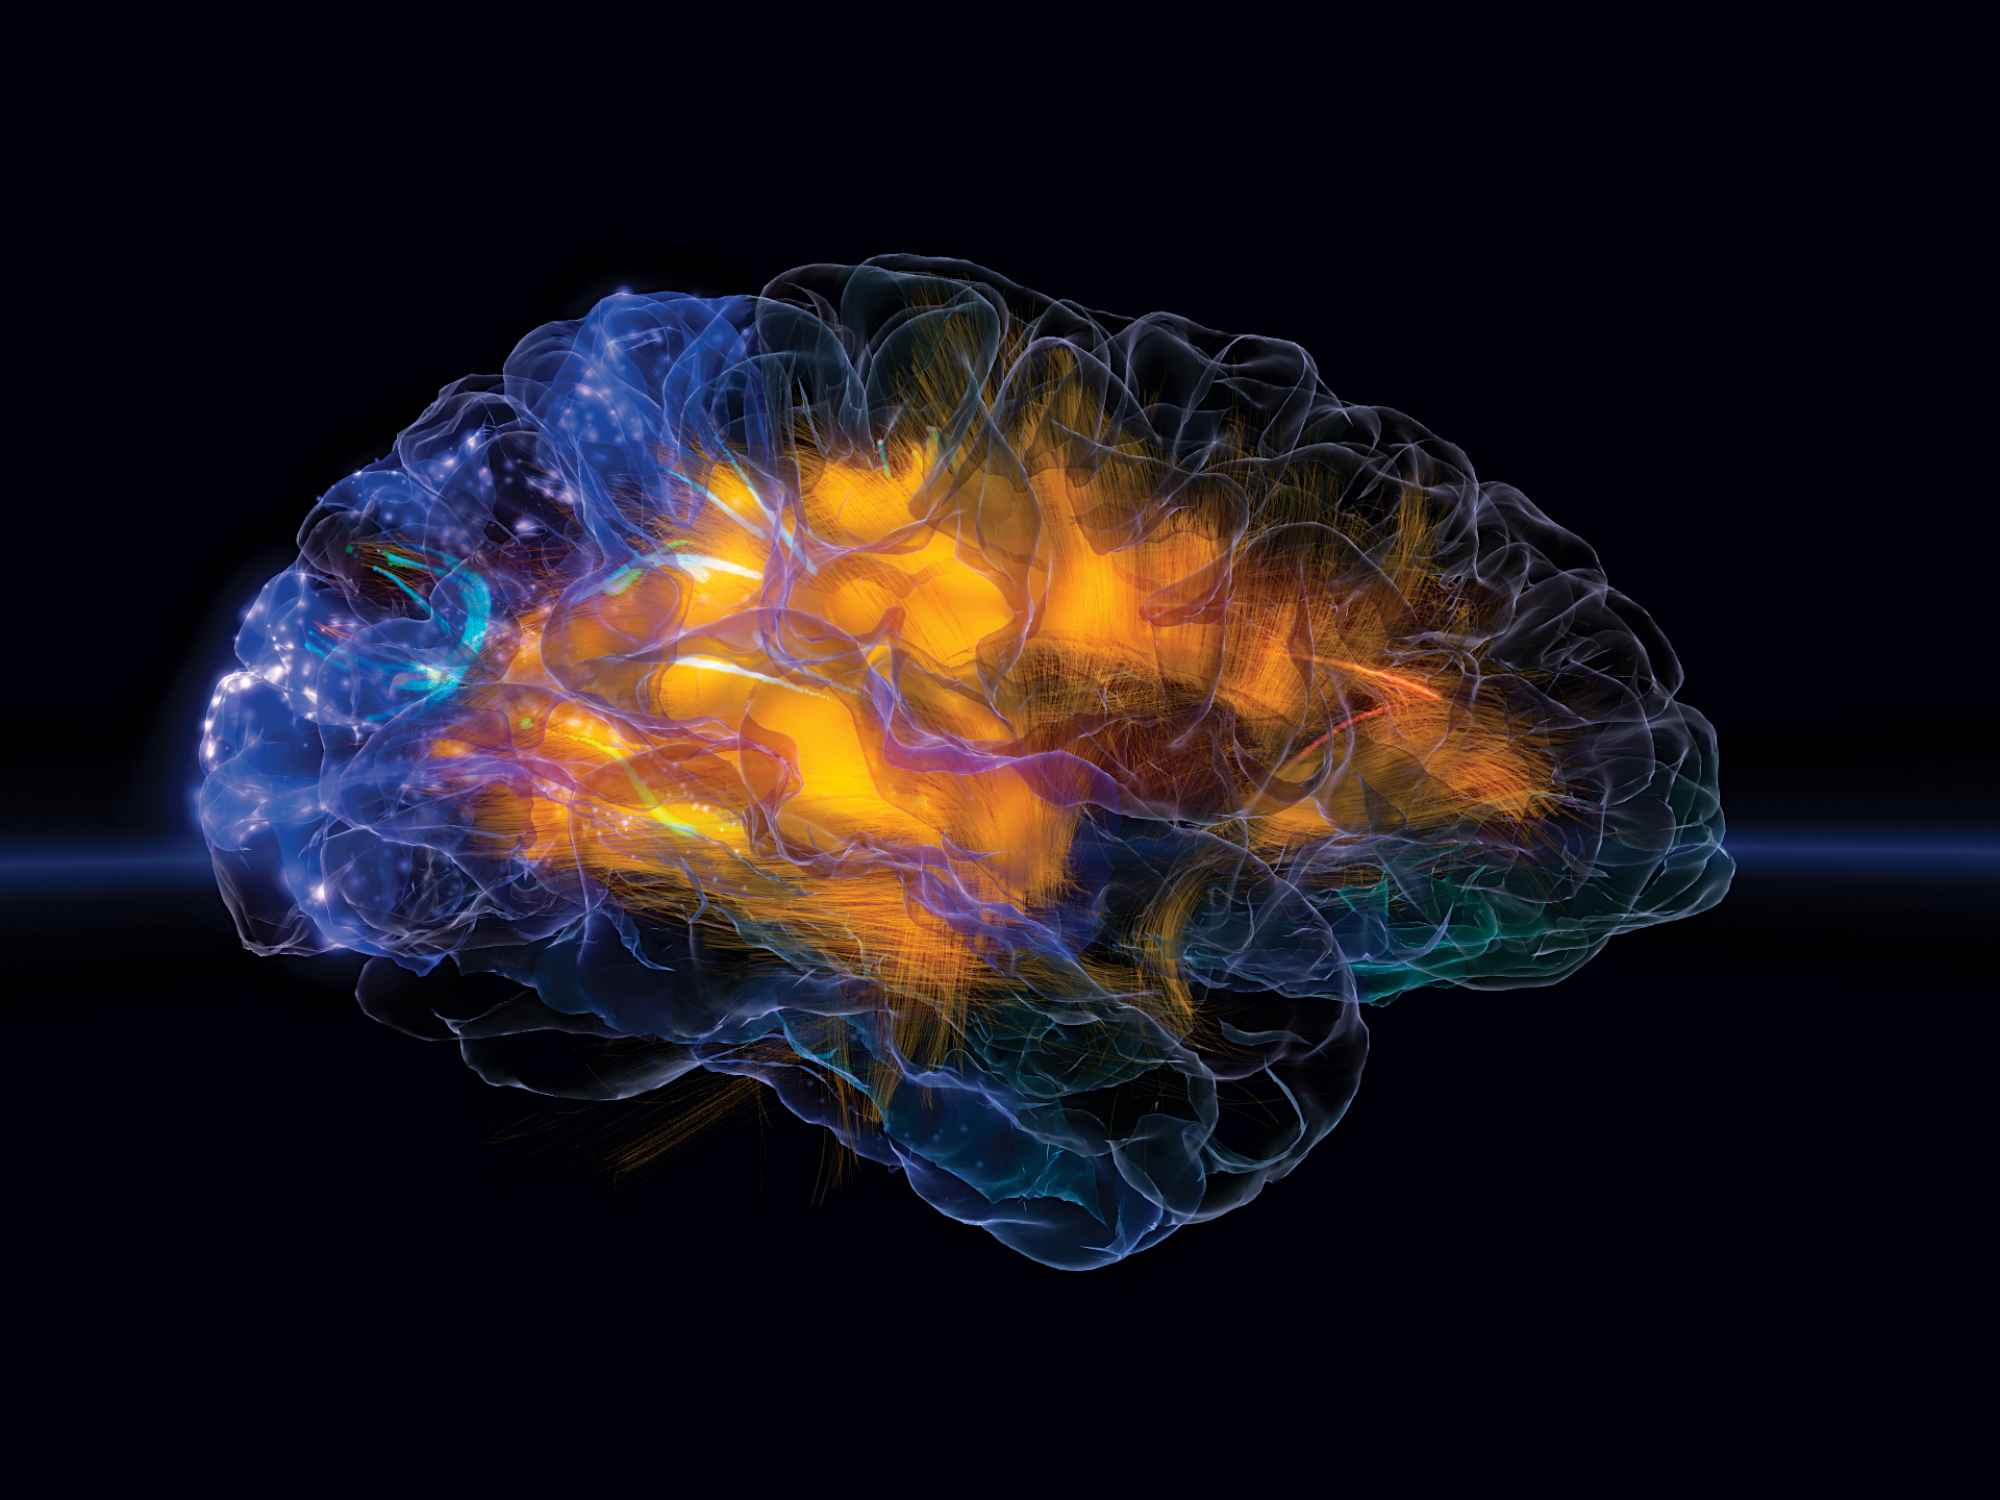 Radiation In Space May Change Astronauts' Brain Structure